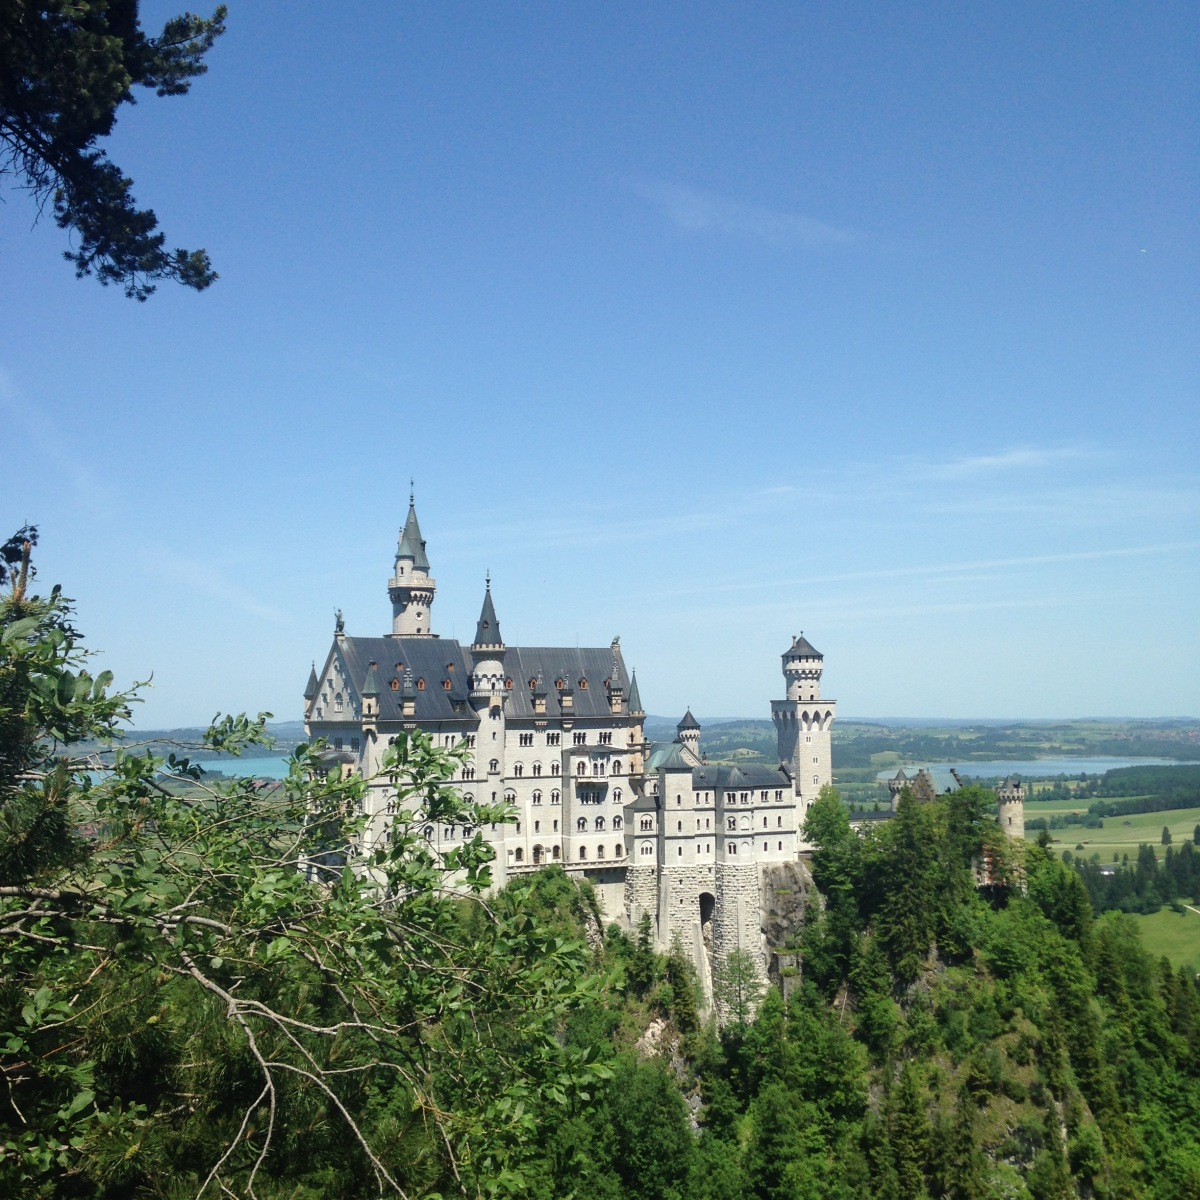 Neuschwanstein: Disney's Sleeping Beauty Castle